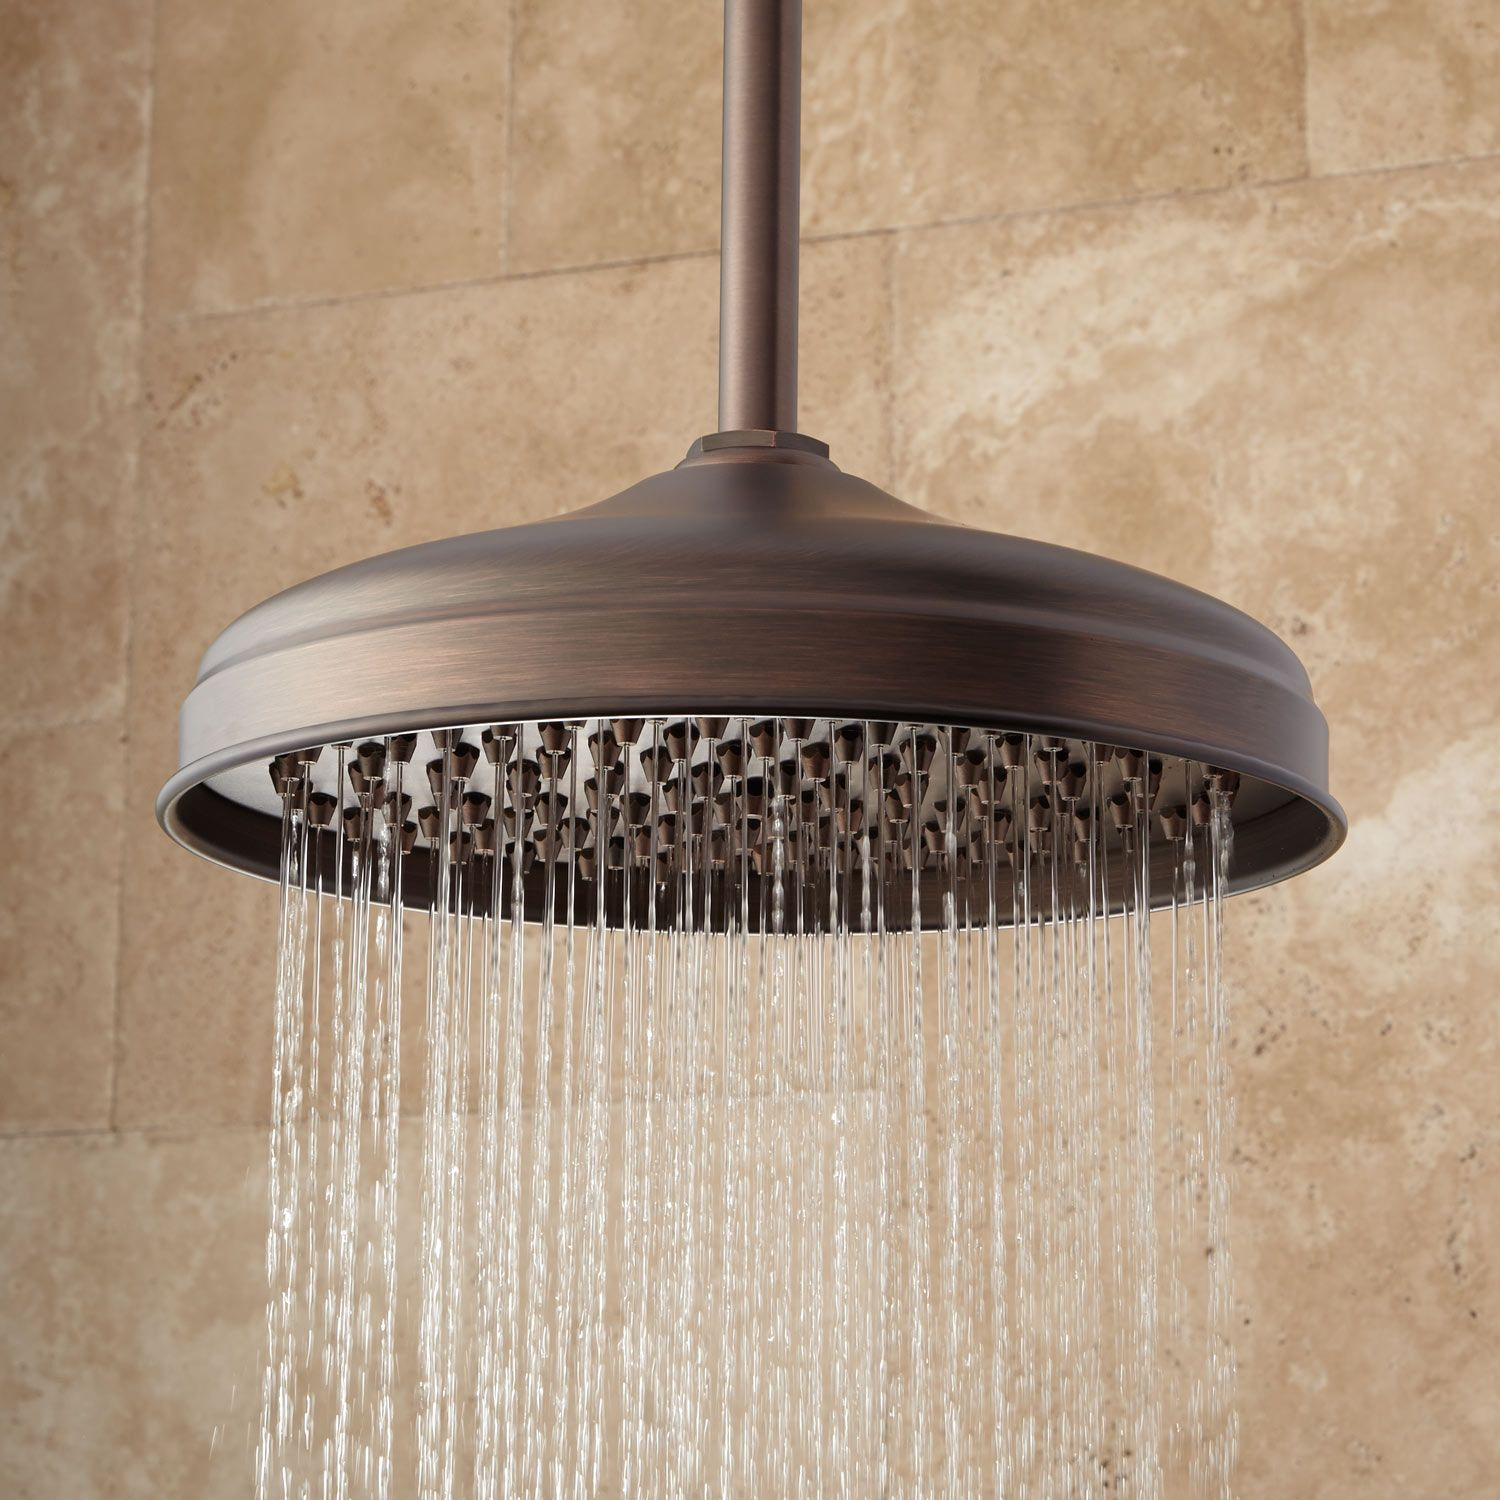 Hinson 14 Rainfall Shower System Hand Shower And 3 Body Sprays